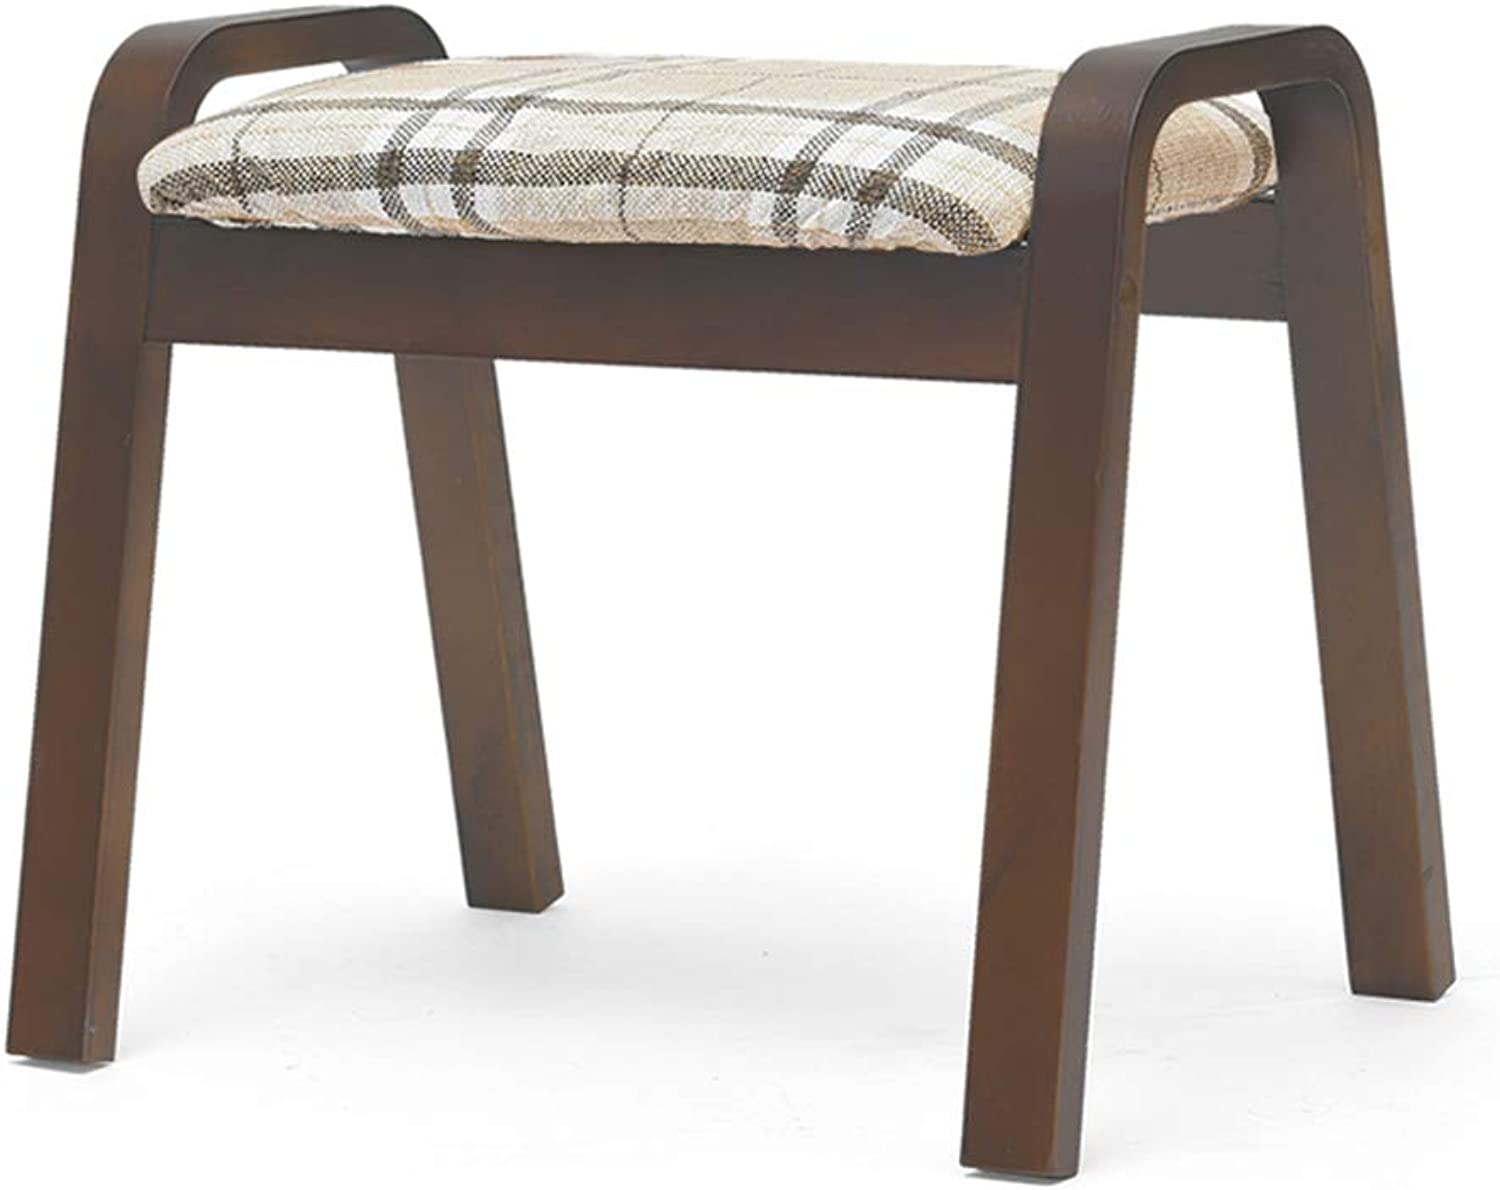 Stool Wooden Striped Chair Cover Living Room Fashion Creative Small Bench Low Stool Sofa shoes Bench (color   Brown, Size   44.5x33x36cm)